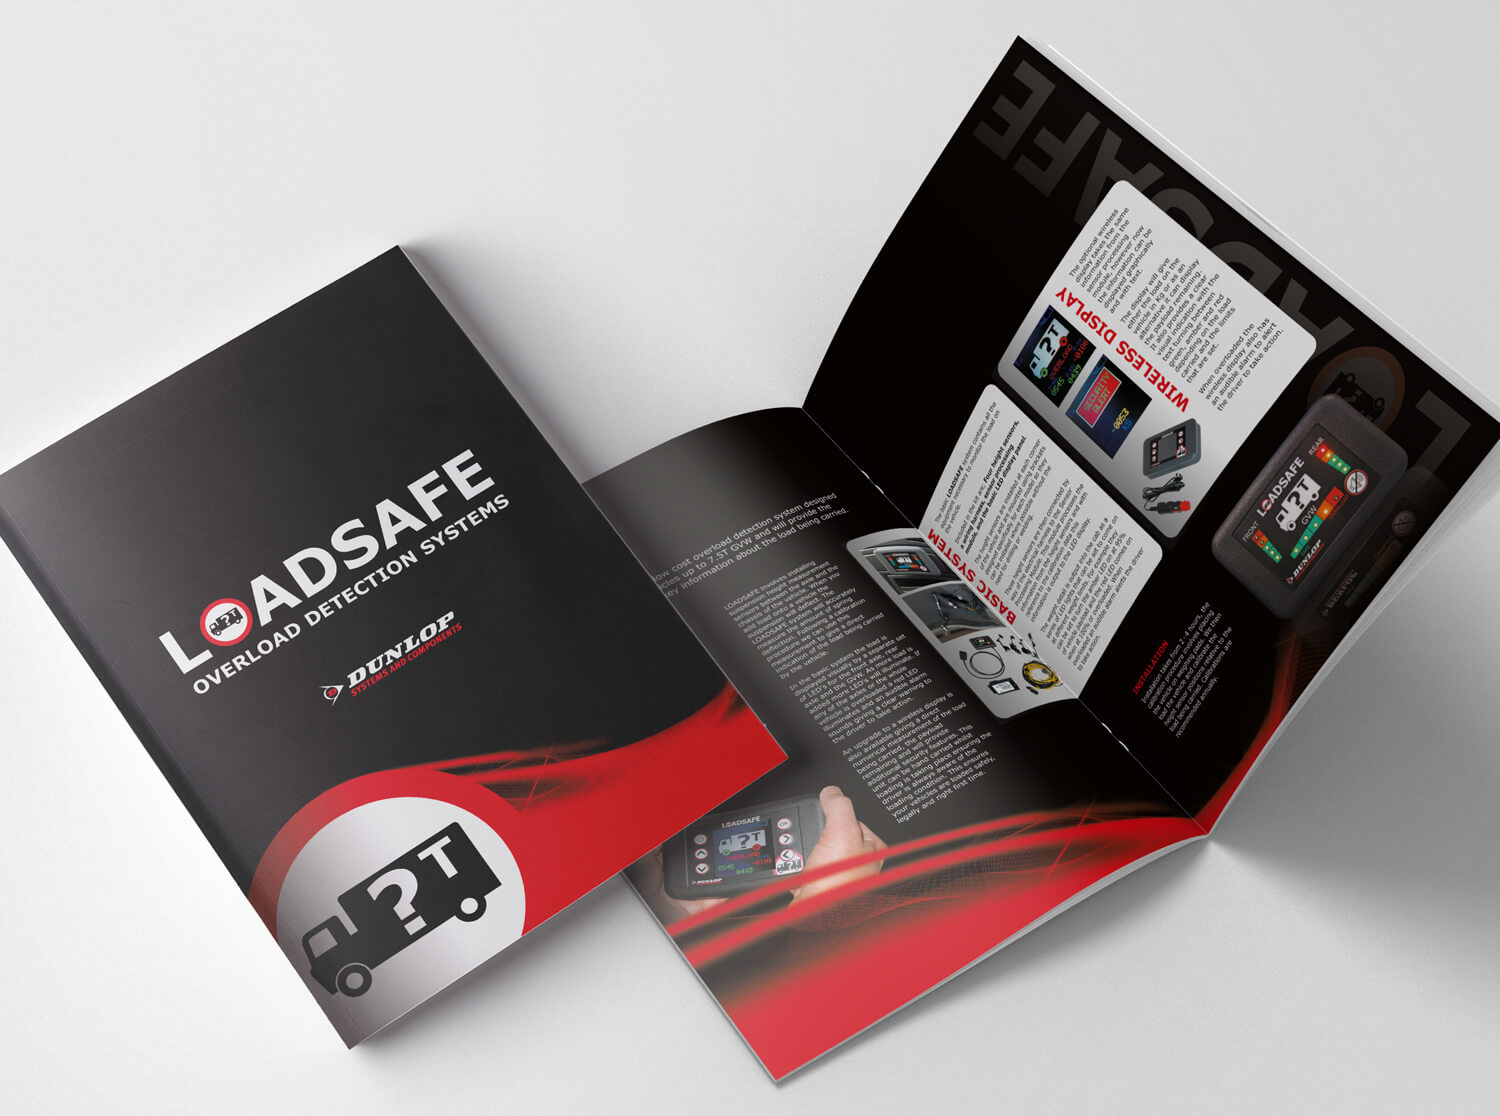 Brochure design and printed brochures